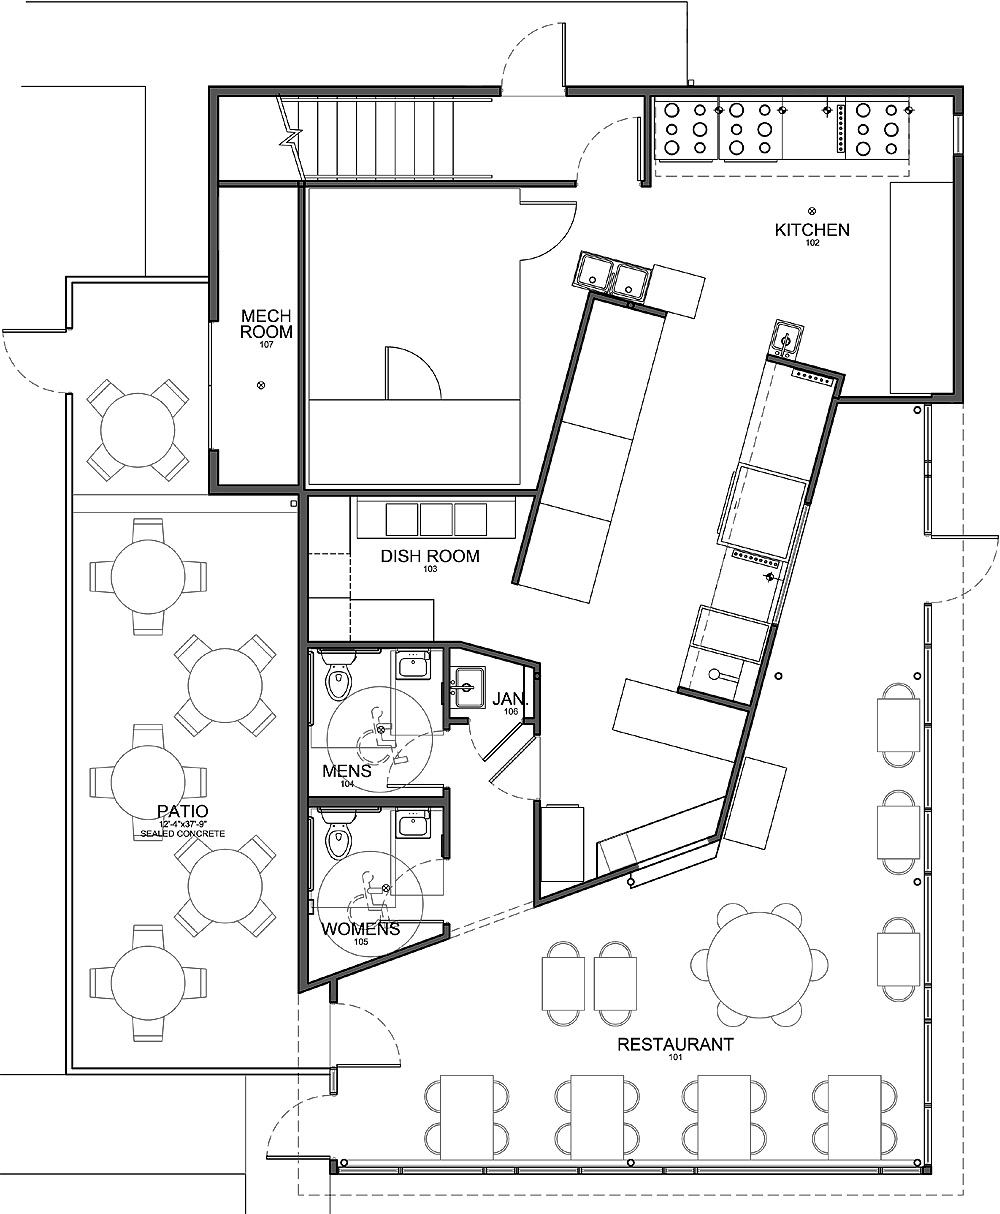 Commercial kitchen floor plans find house plans for Find house blueprints